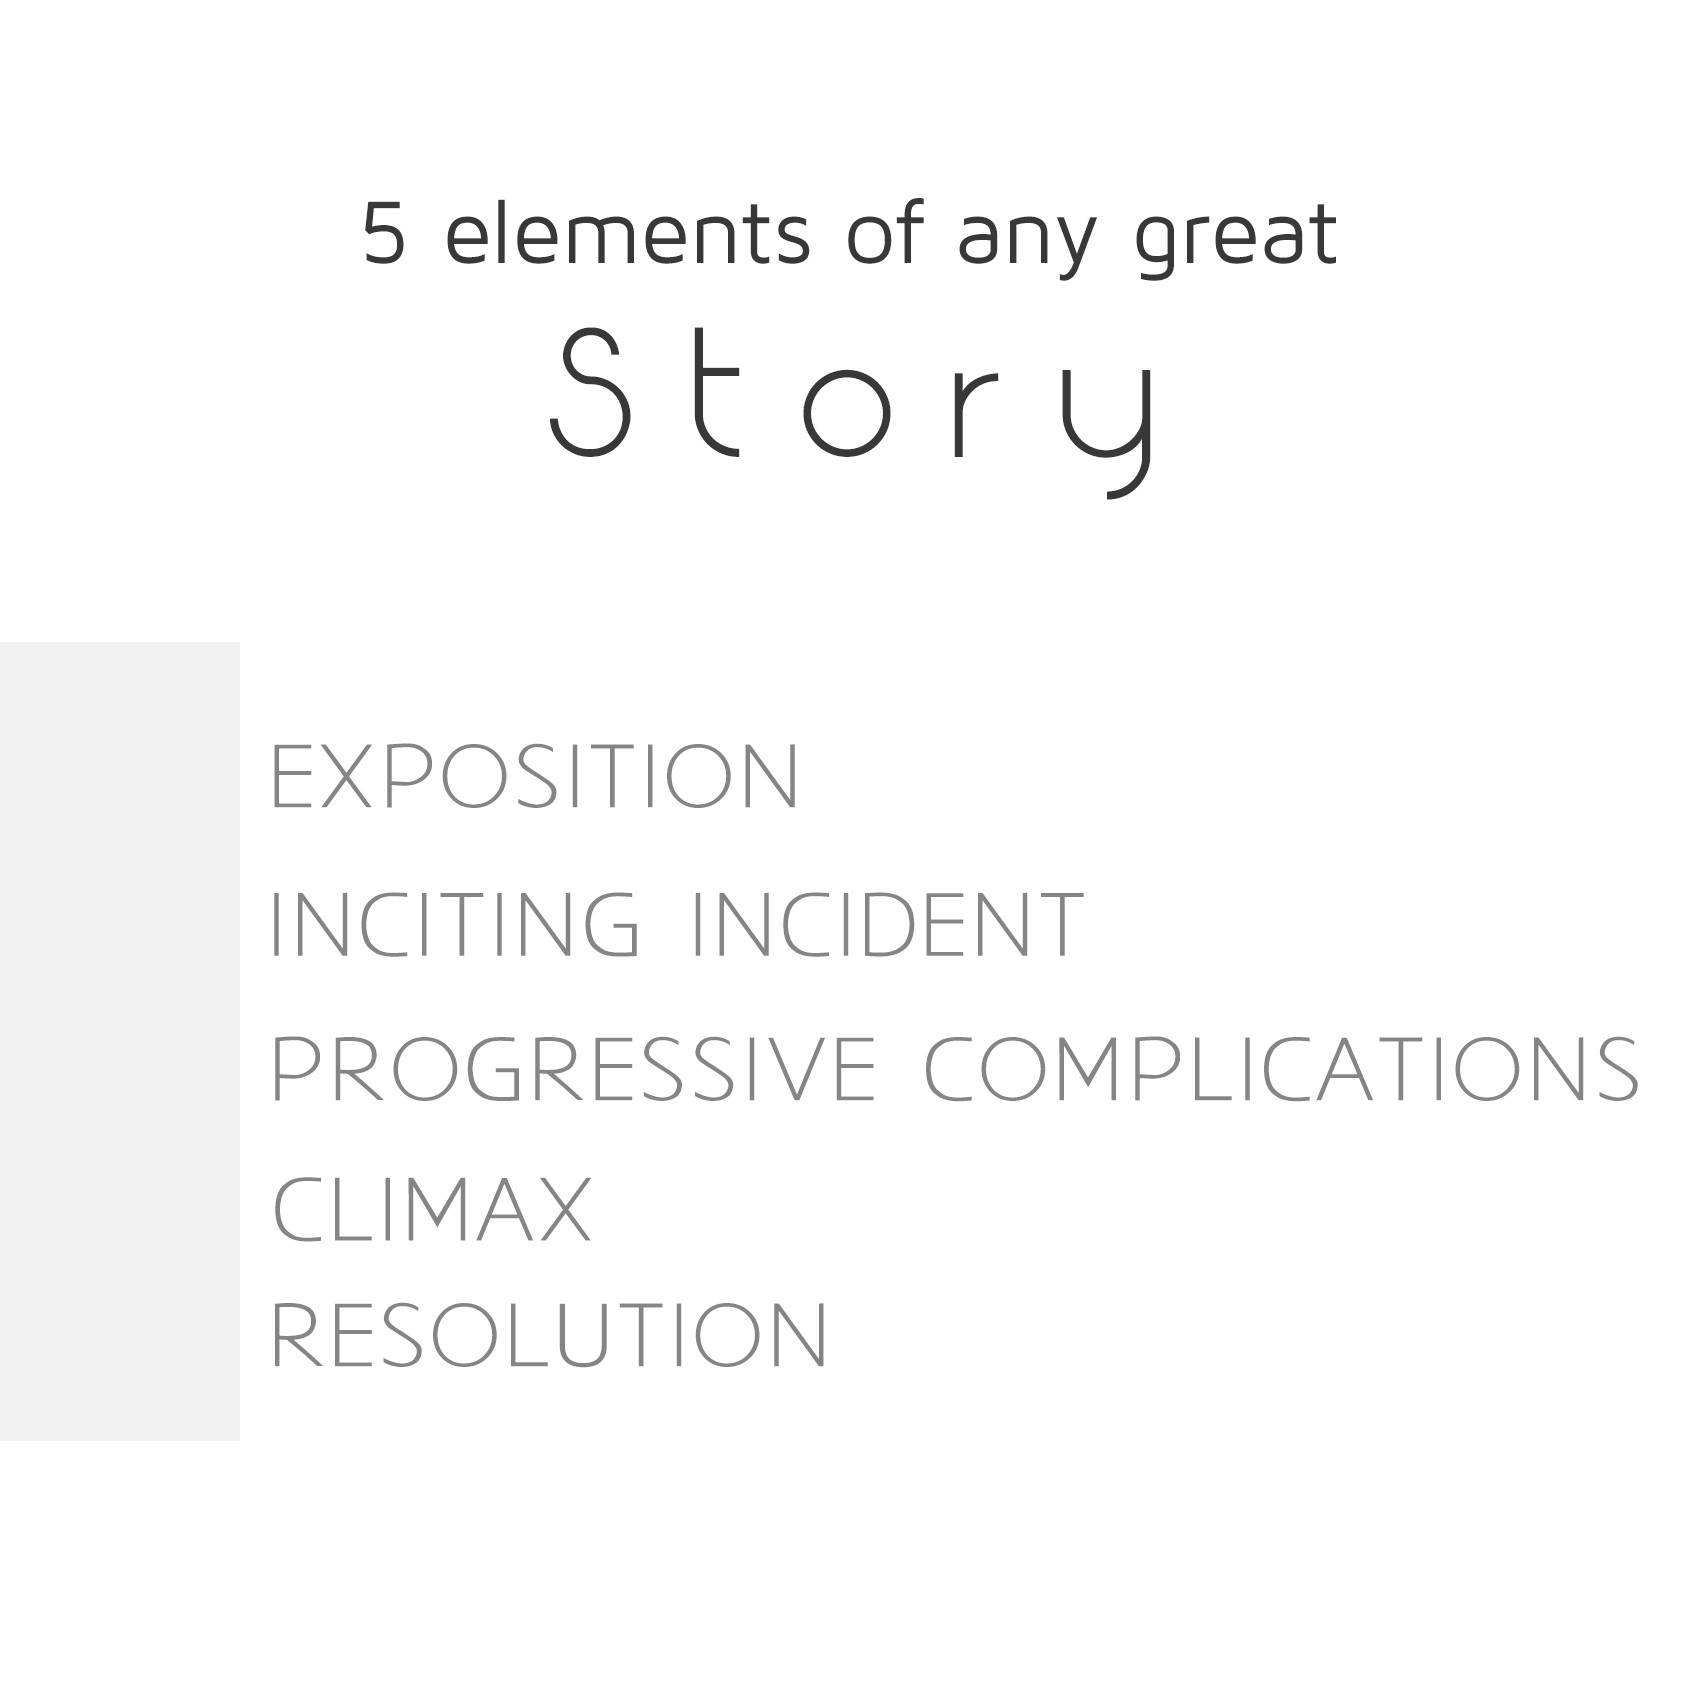 Structure of stories: Every great story will follow a predictable pattern. The five elements to any great story.